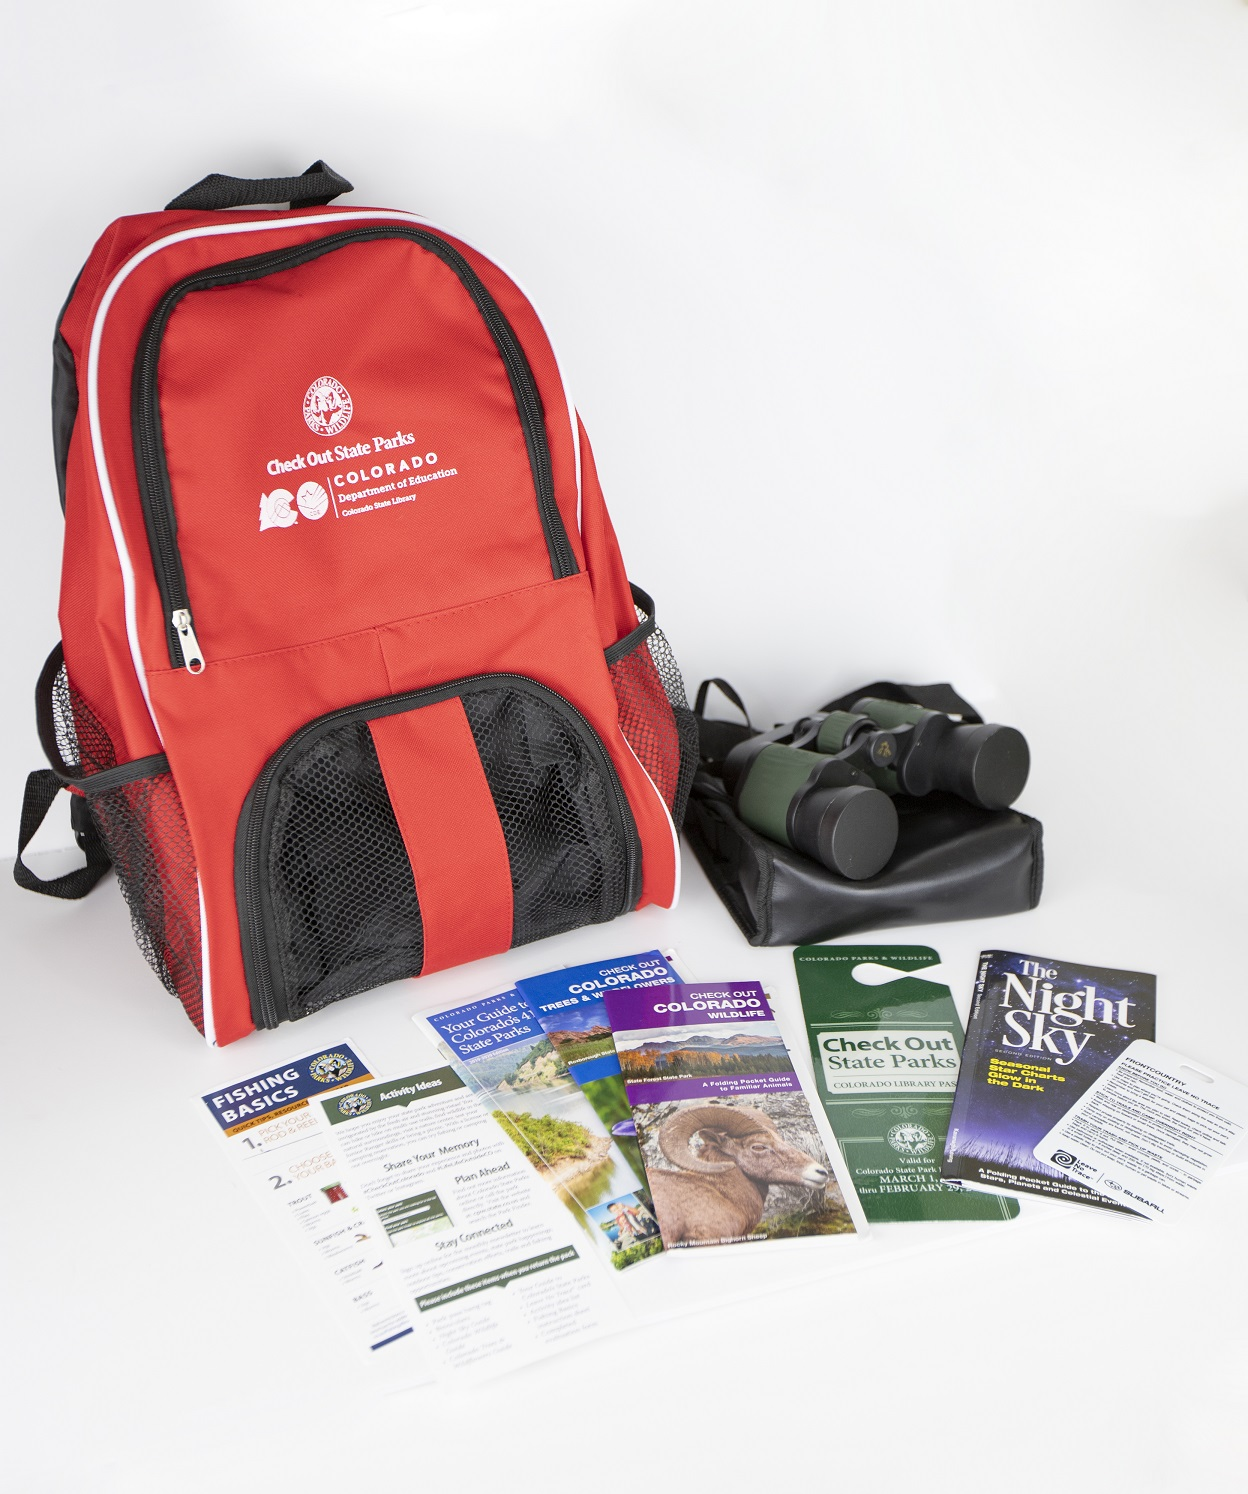 Check out state parks back pack and borhcures